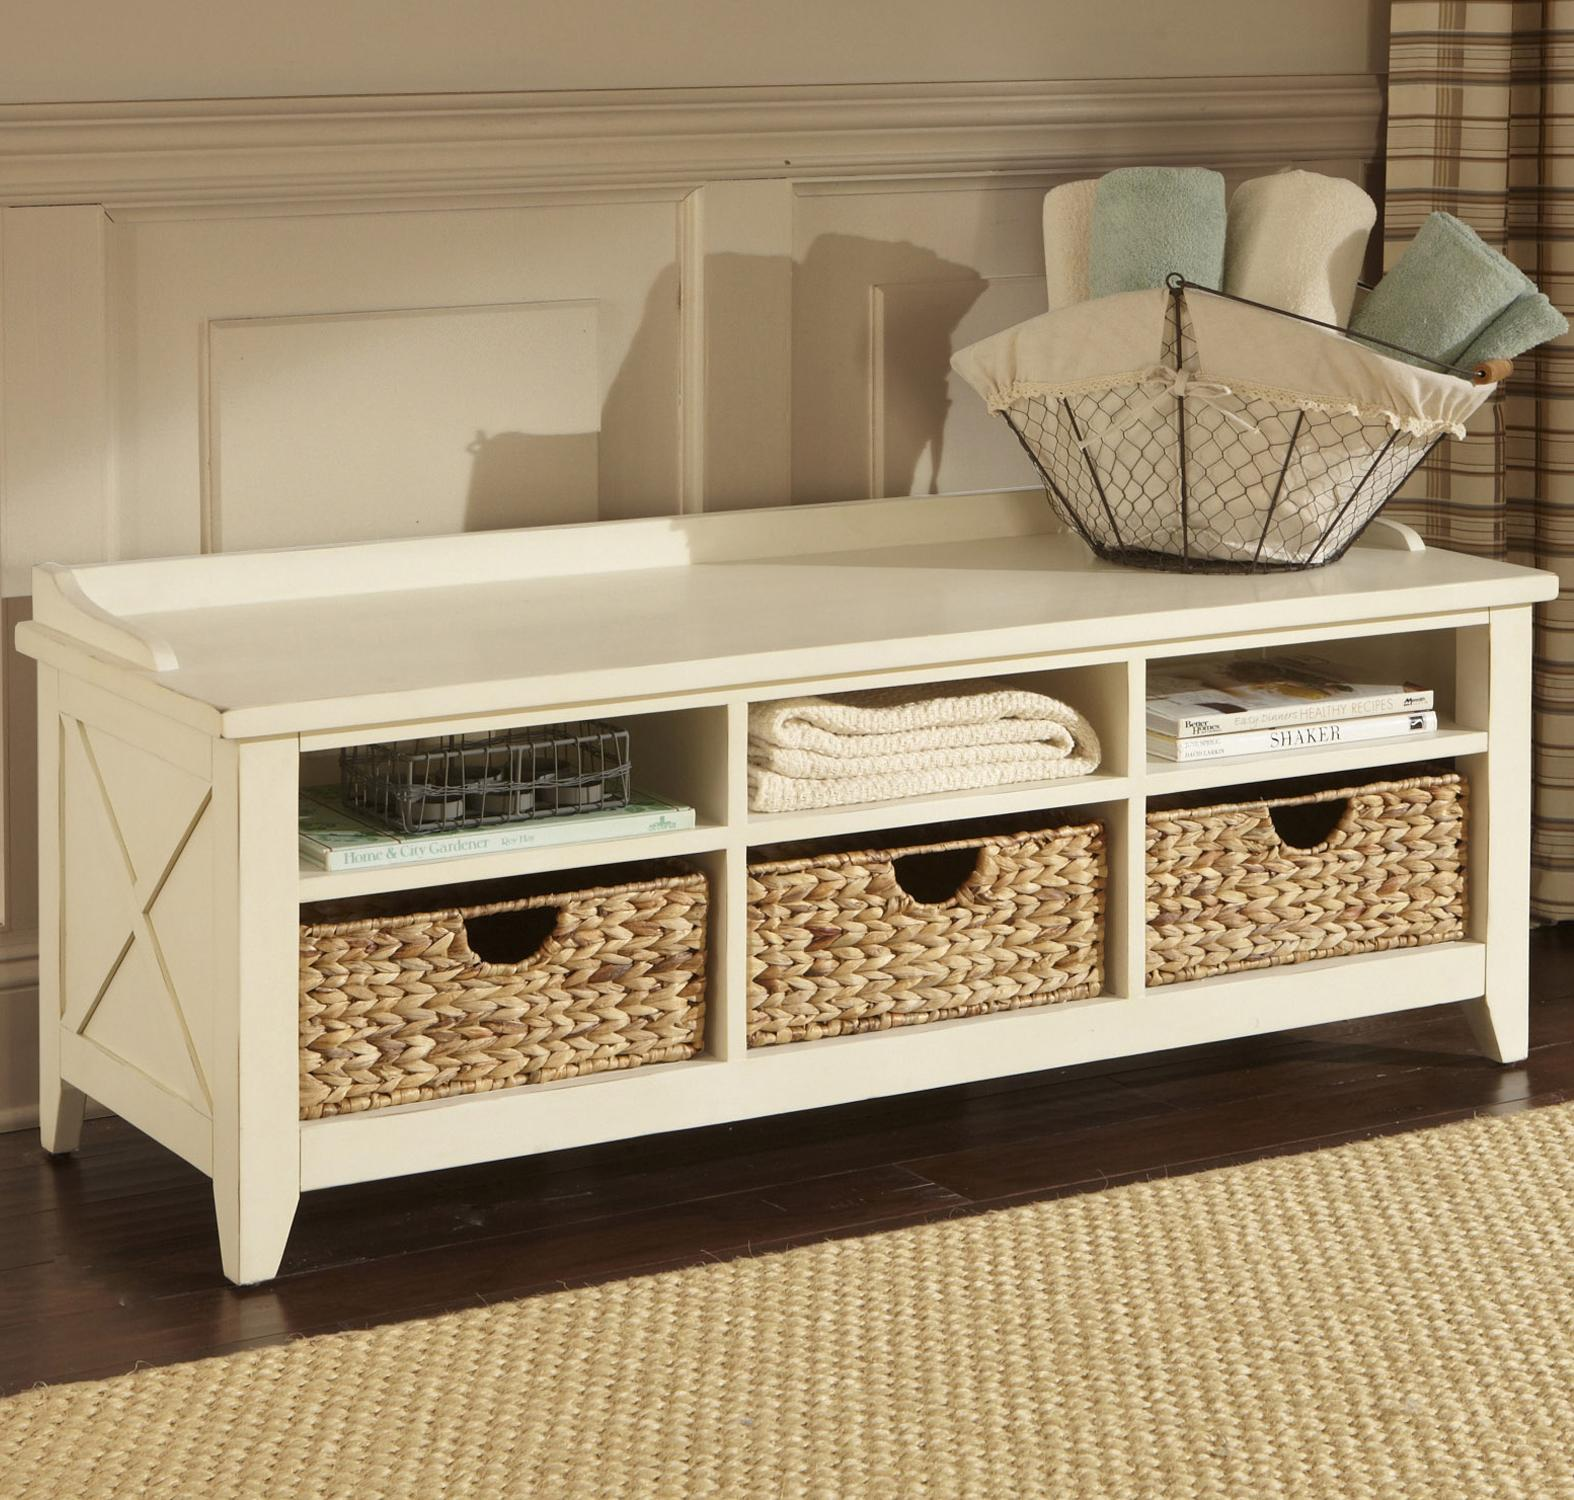 Marvelous Cubby Storage Entryway Bench